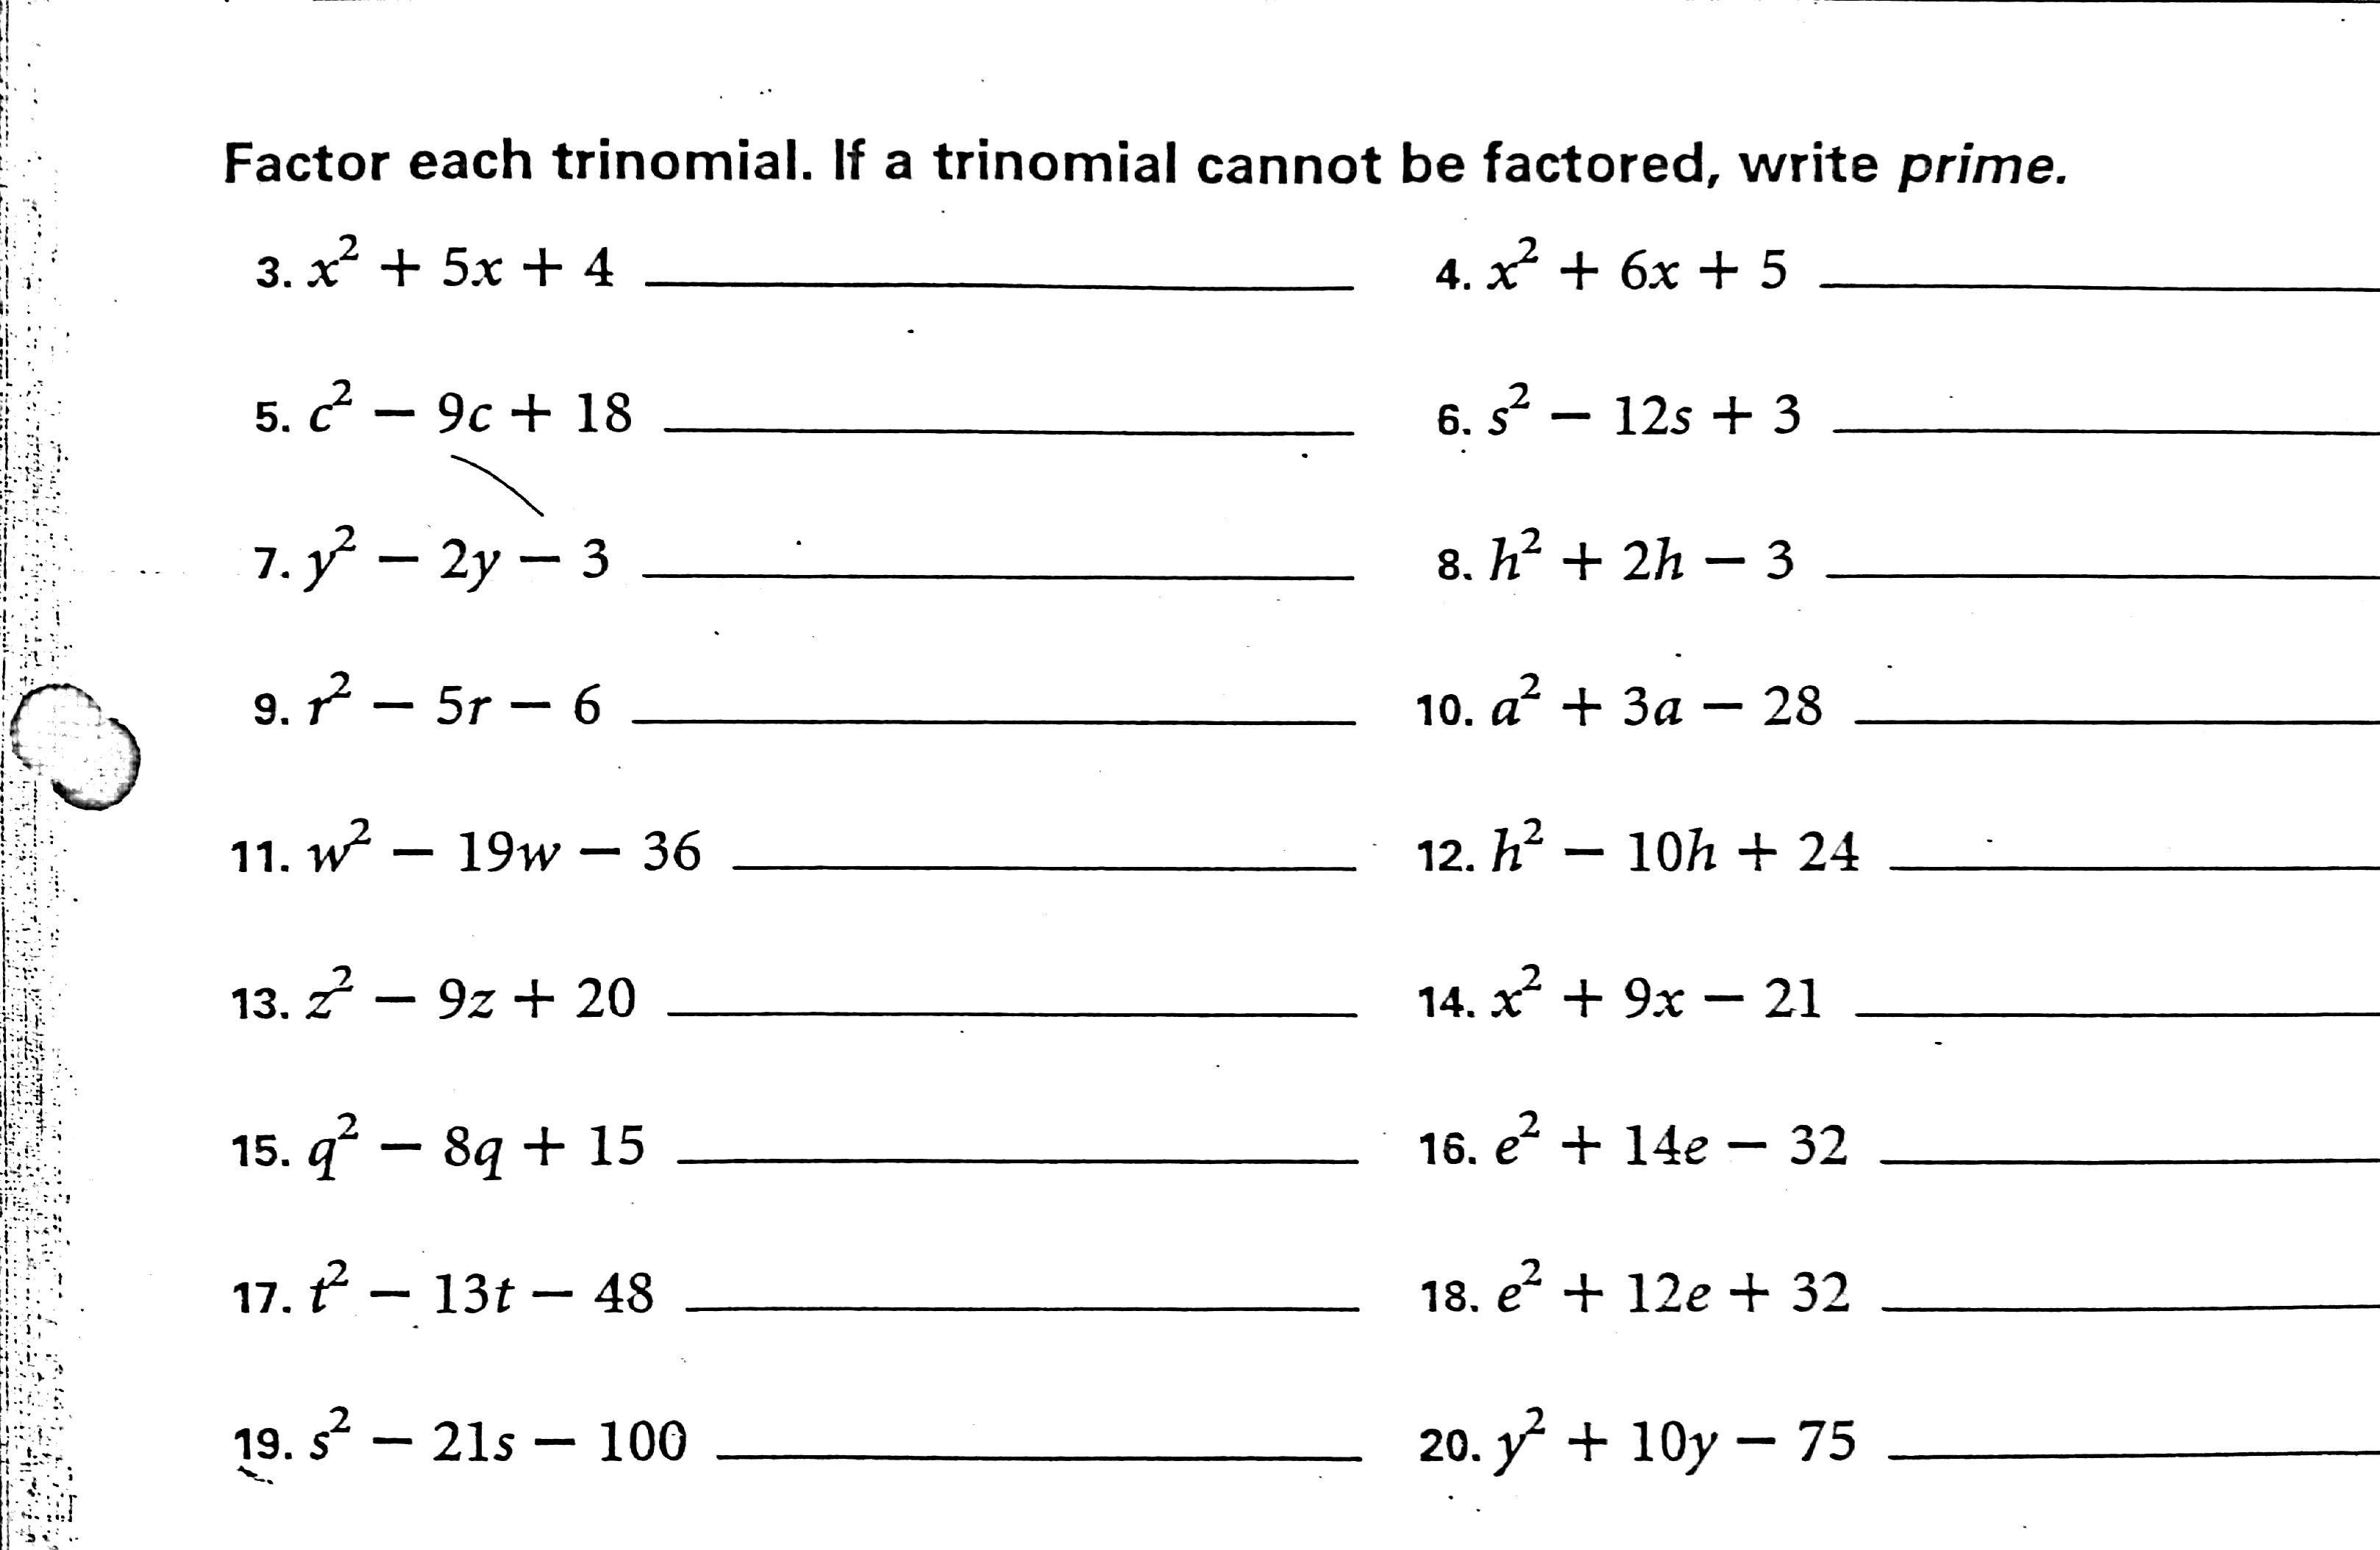 Proatmealus  Winning Factoring Worksheet  Delwfgcom With Lovely Factoring Polynomials Practice Worksheet With Answers Coterraneo With Amazing Grade  English Worksheet Also Area Volume And Perimeter Worksheets In Addition Measurement Length Worksheets And Maths Grade  Worksheets As Well As Phonics Free Worksheets Printable Additionally Modal Worksheets From Delwfgcom With Proatmealus  Lovely Factoring Worksheet  Delwfgcom With Amazing Factoring Polynomials Practice Worksheet With Answers Coterraneo And Winning Grade  English Worksheet Also Area Volume And Perimeter Worksheets In Addition Measurement Length Worksheets From Delwfgcom